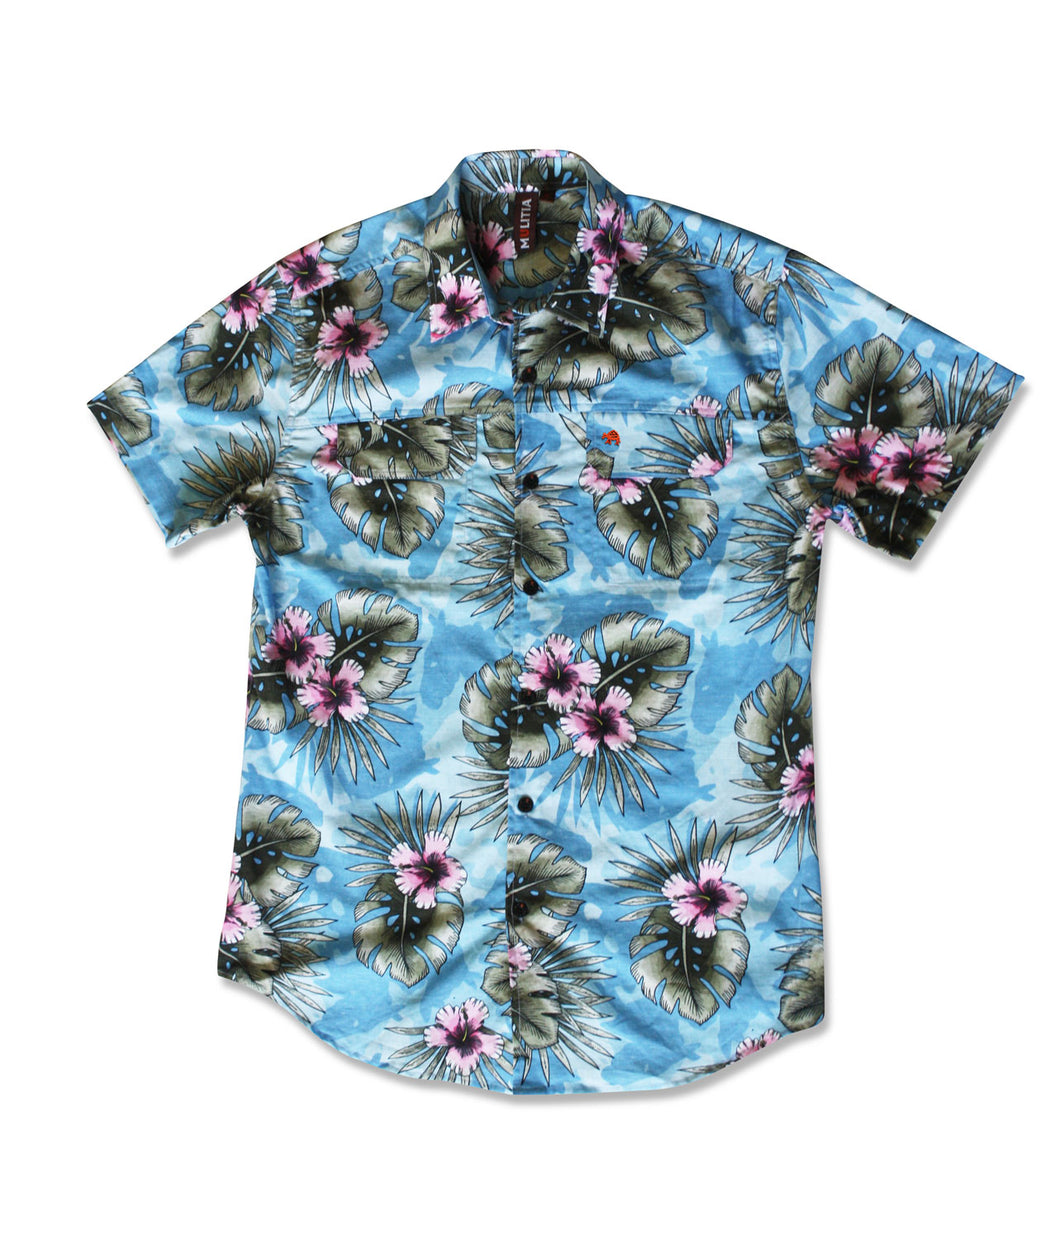 Jive Shirt in Sky Oasis Print